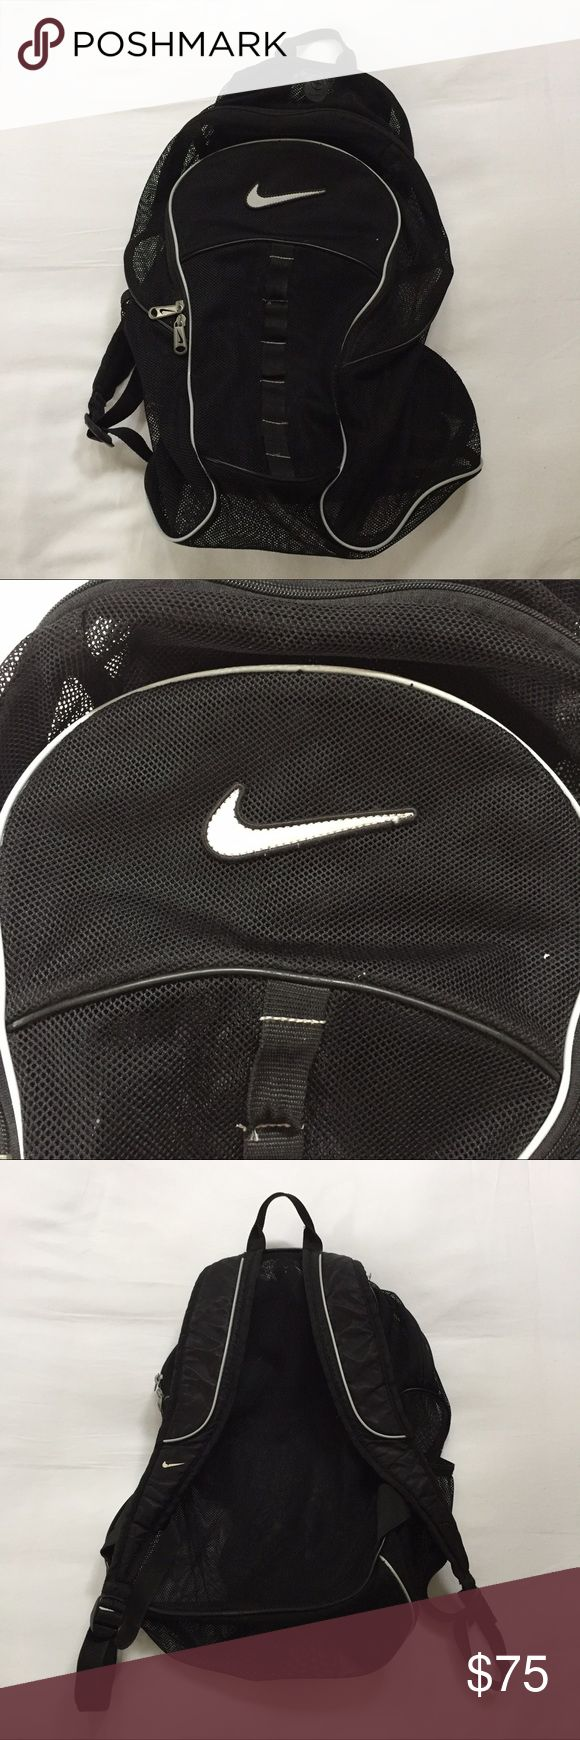 🐚 Nike mesh backpack 🐚 Nike mesh backpack • gently used • in great shape Nike Bags Backpacks